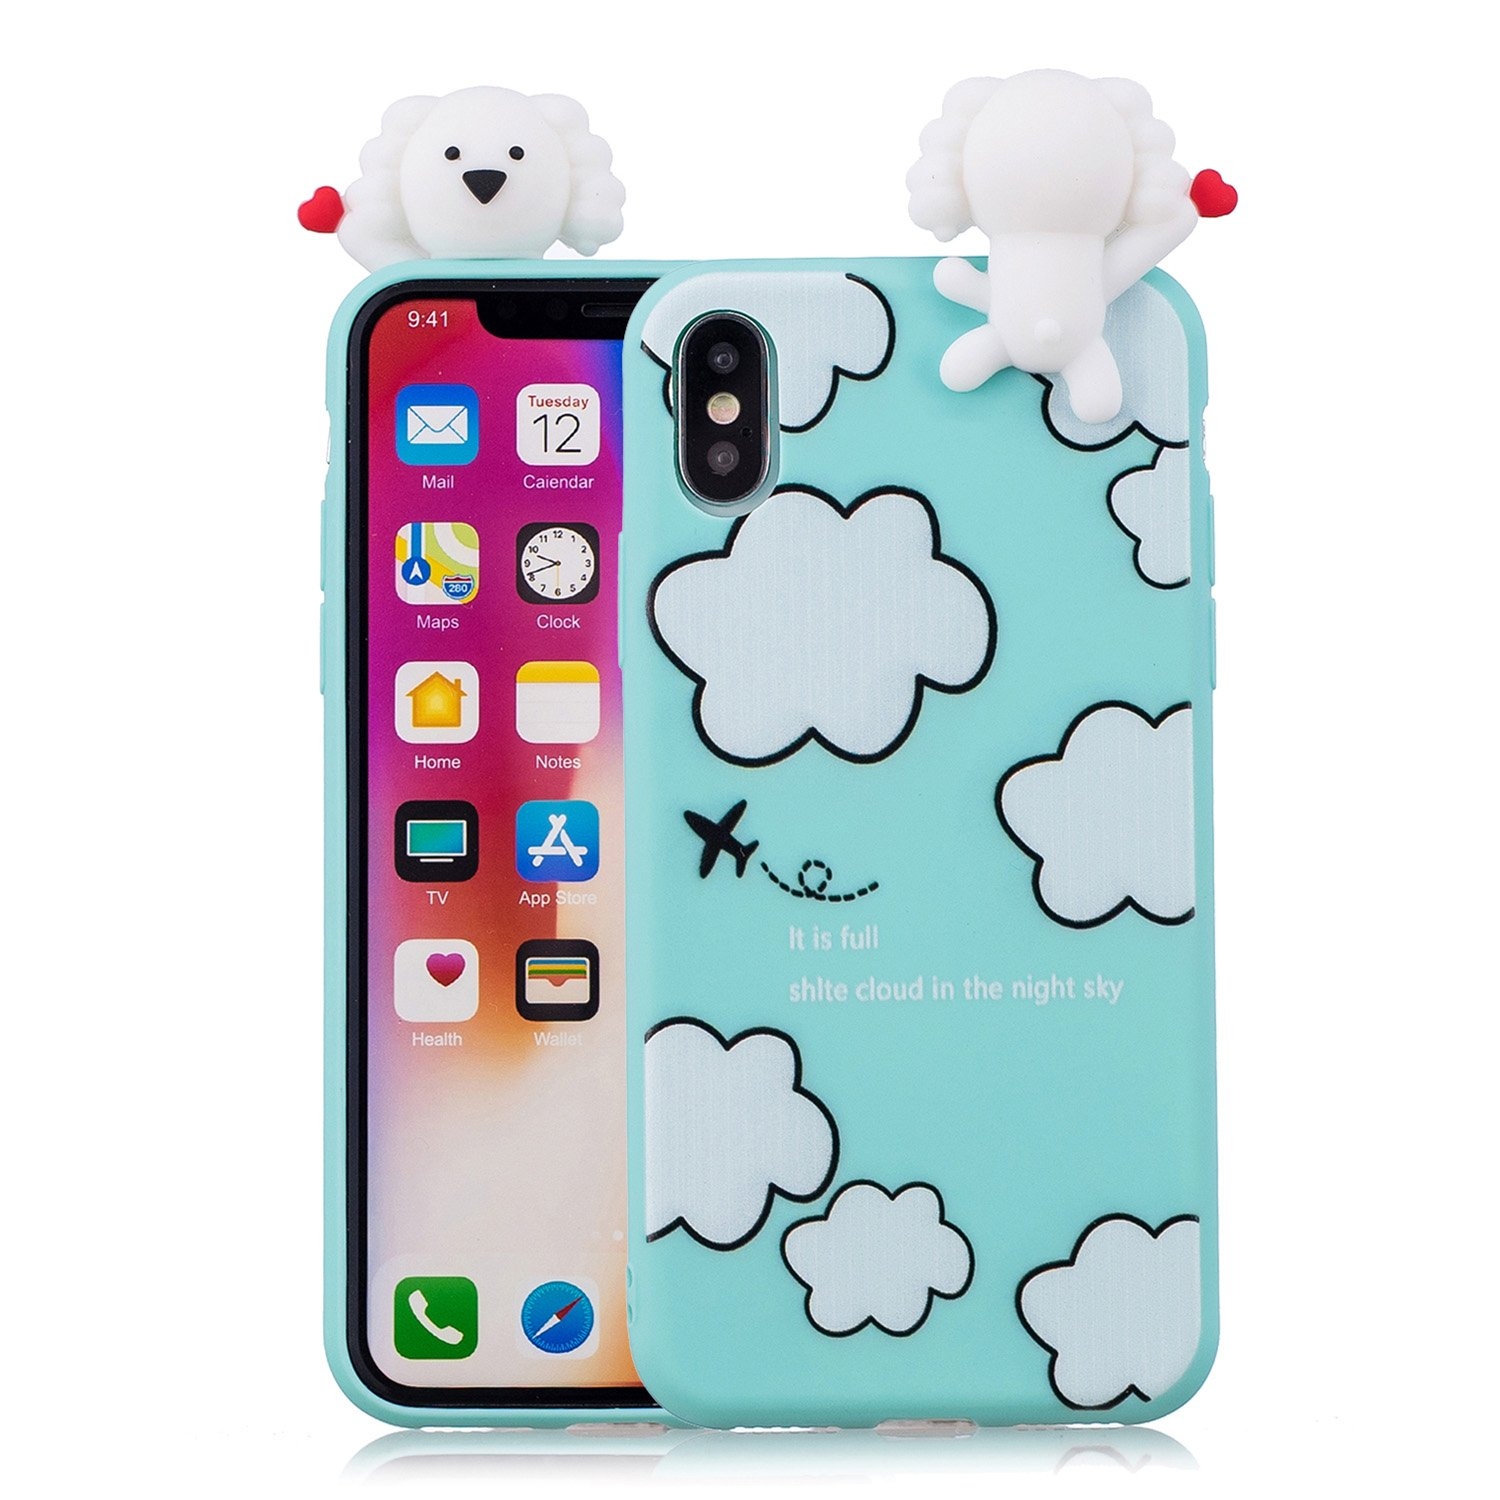 Yobby 3D Animal Dessin Animé Coque iPhone XS Max, Coque iPhone XS Max Ultra Fine Mignonne Kawaii Motif Étui Slim Doux Flexible Souple Caoutchouc Silicone Antichoc Housse Protection-Panda Blanc